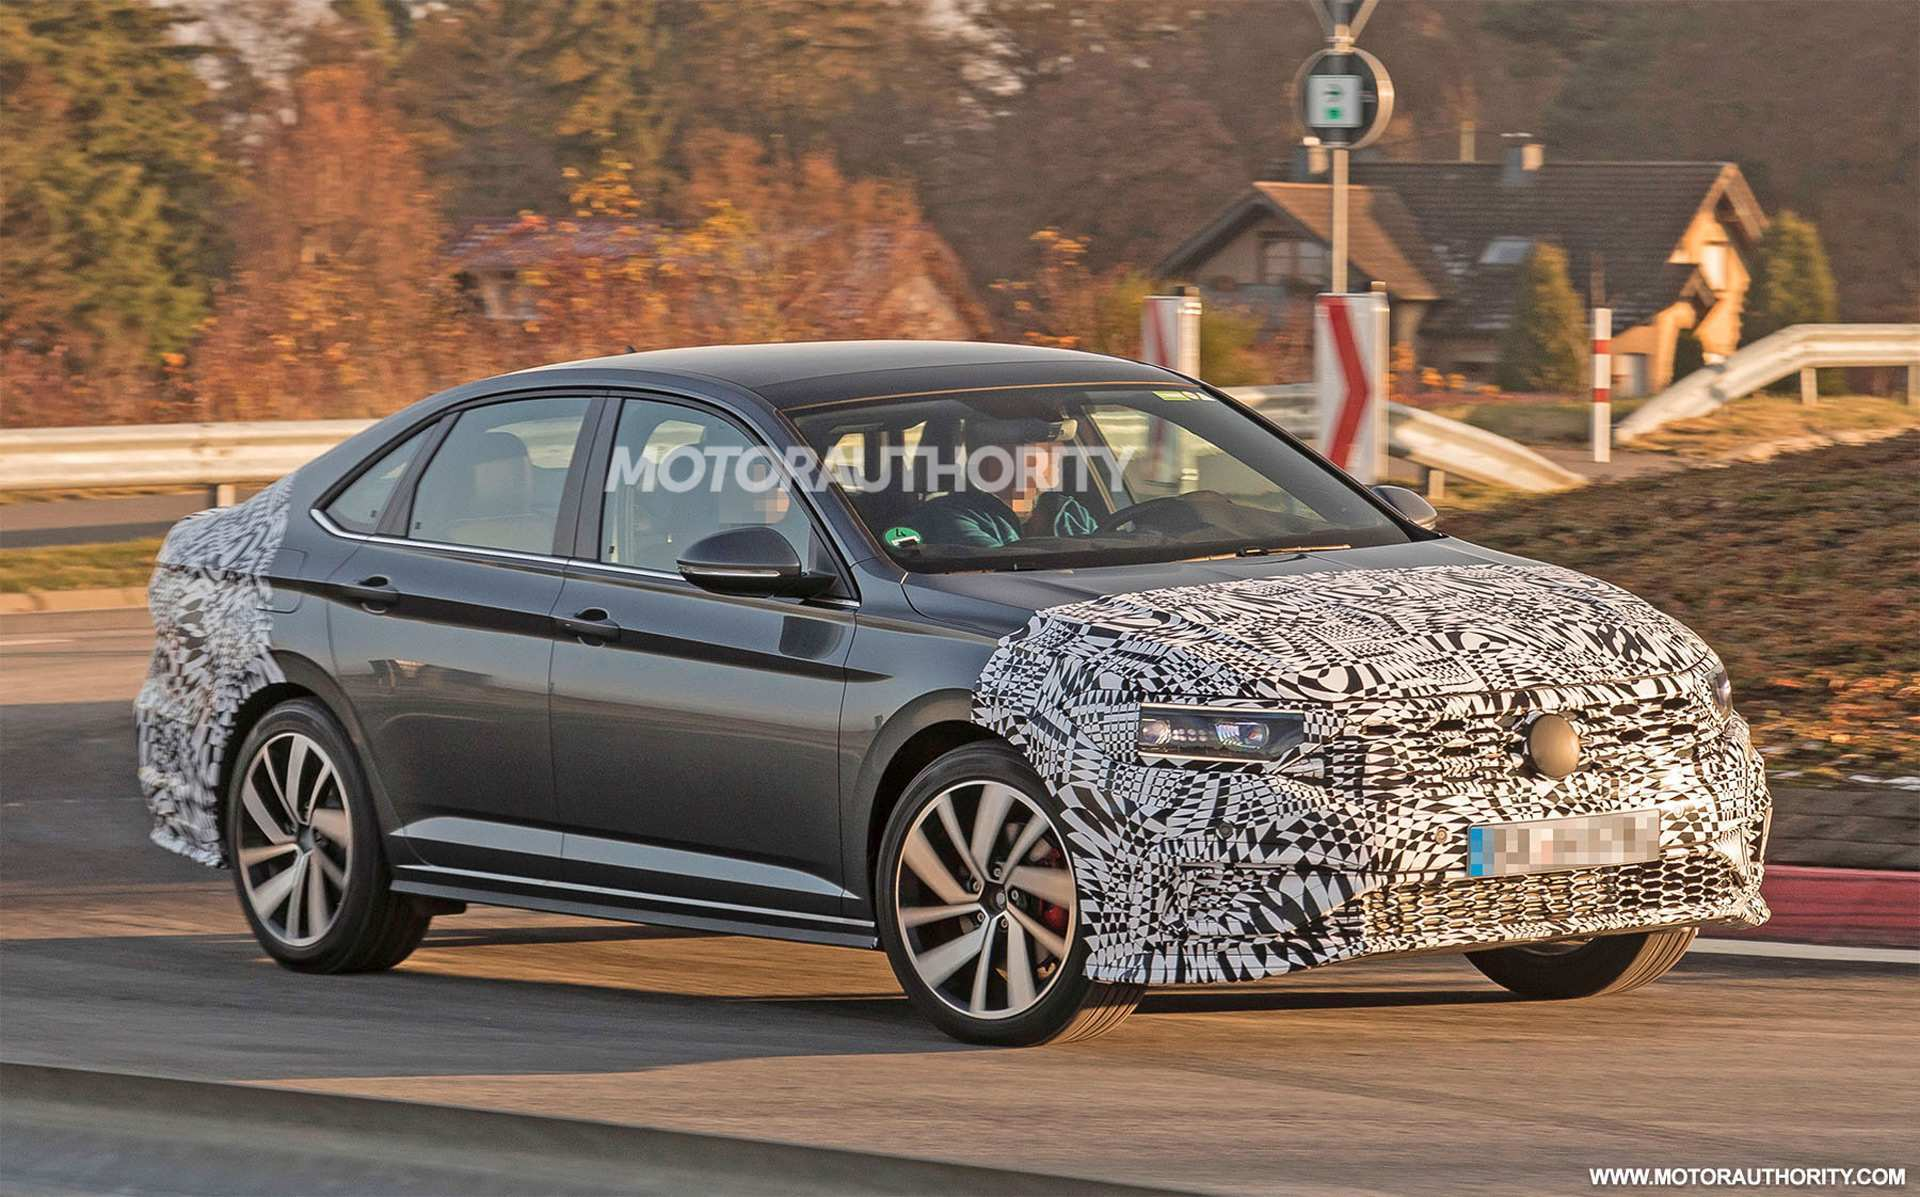 31 All New 2019 Vw Jetta Spy Shots Exterior